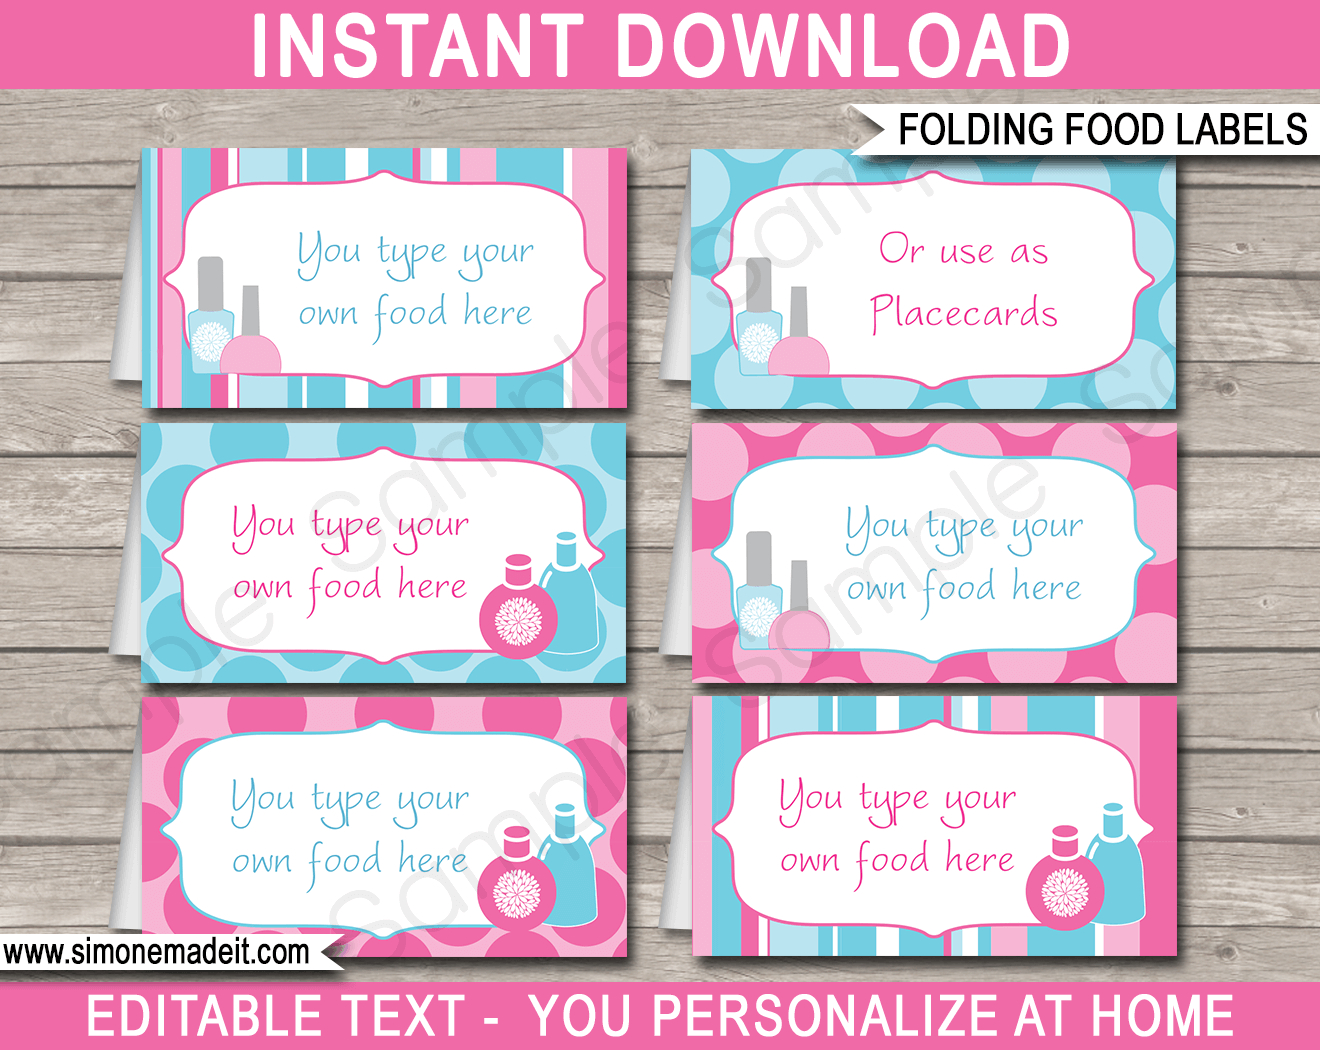 Spa Party Food Labels  Place Cards  Spa Theme  Party Decorations With Food Label Template For Party